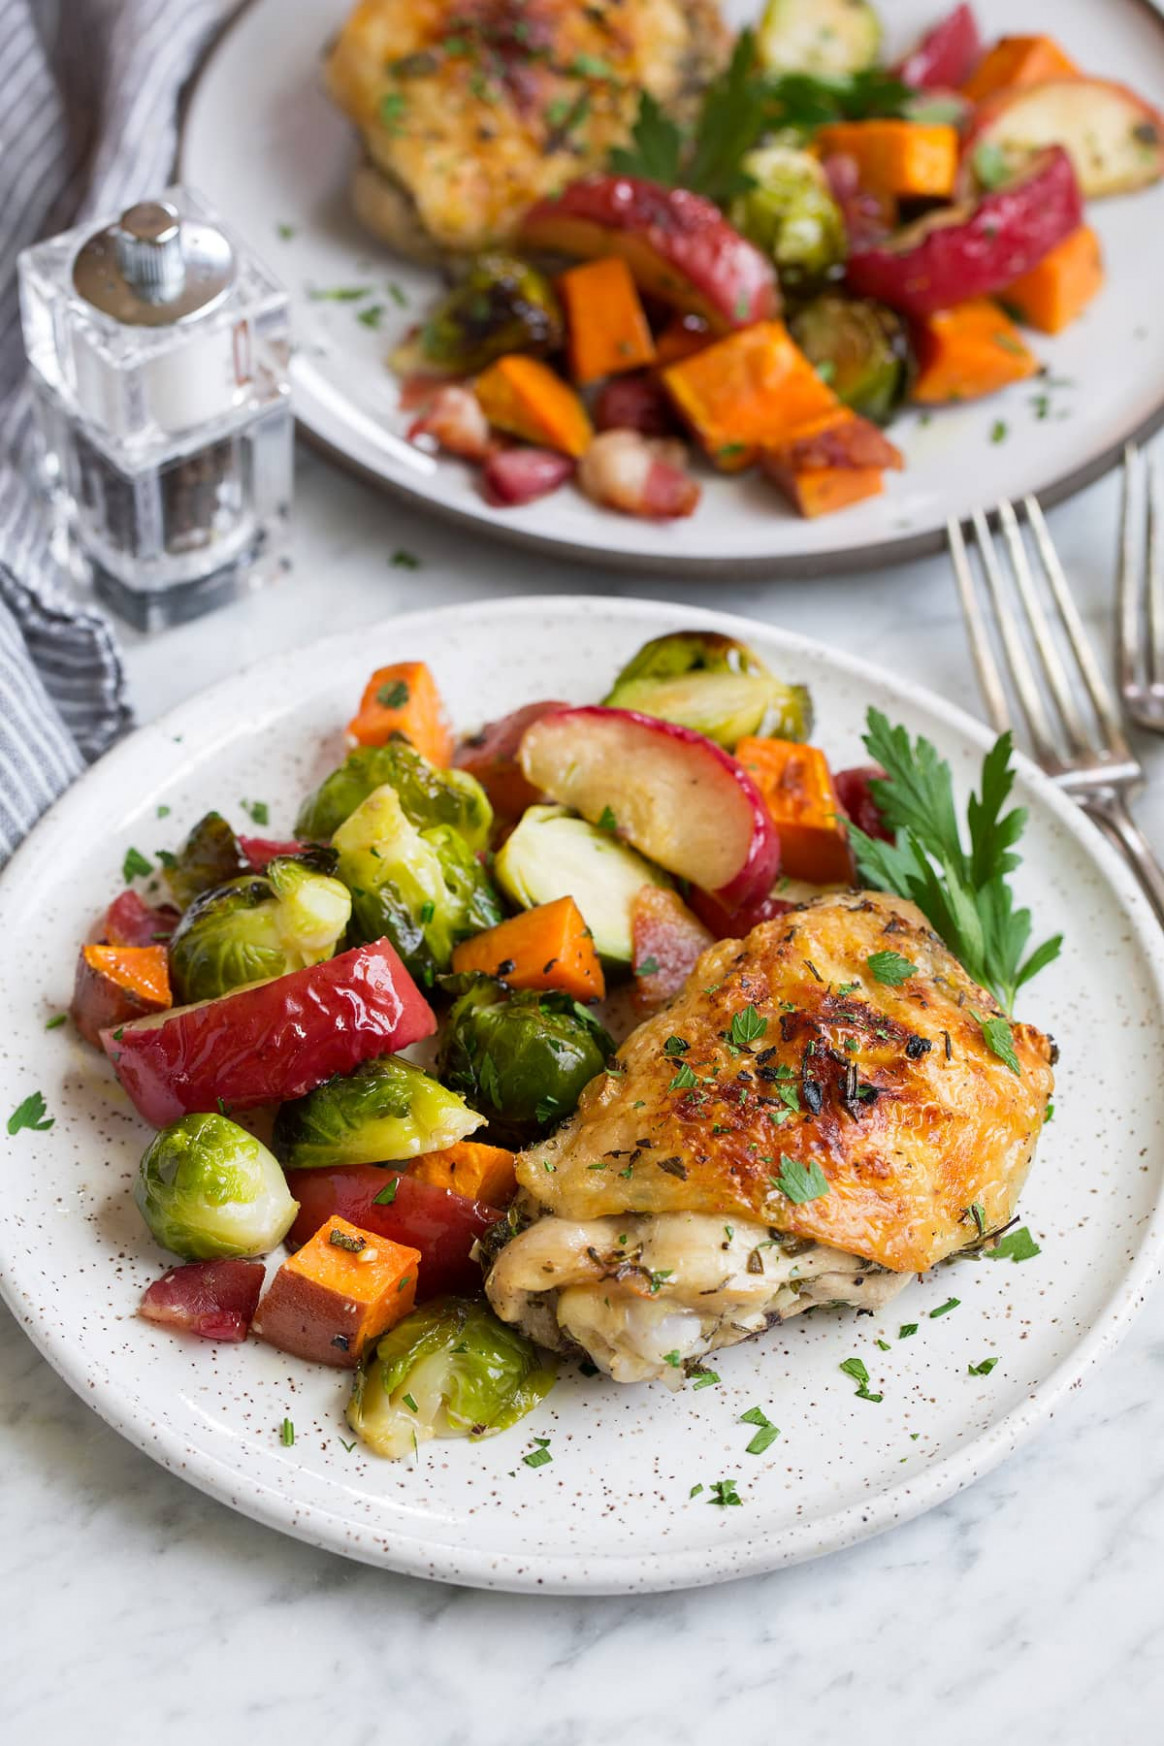 Autumn Chicken Dinner Recipe One Pan! - Cooking Classy - recipes for dinner with chicken